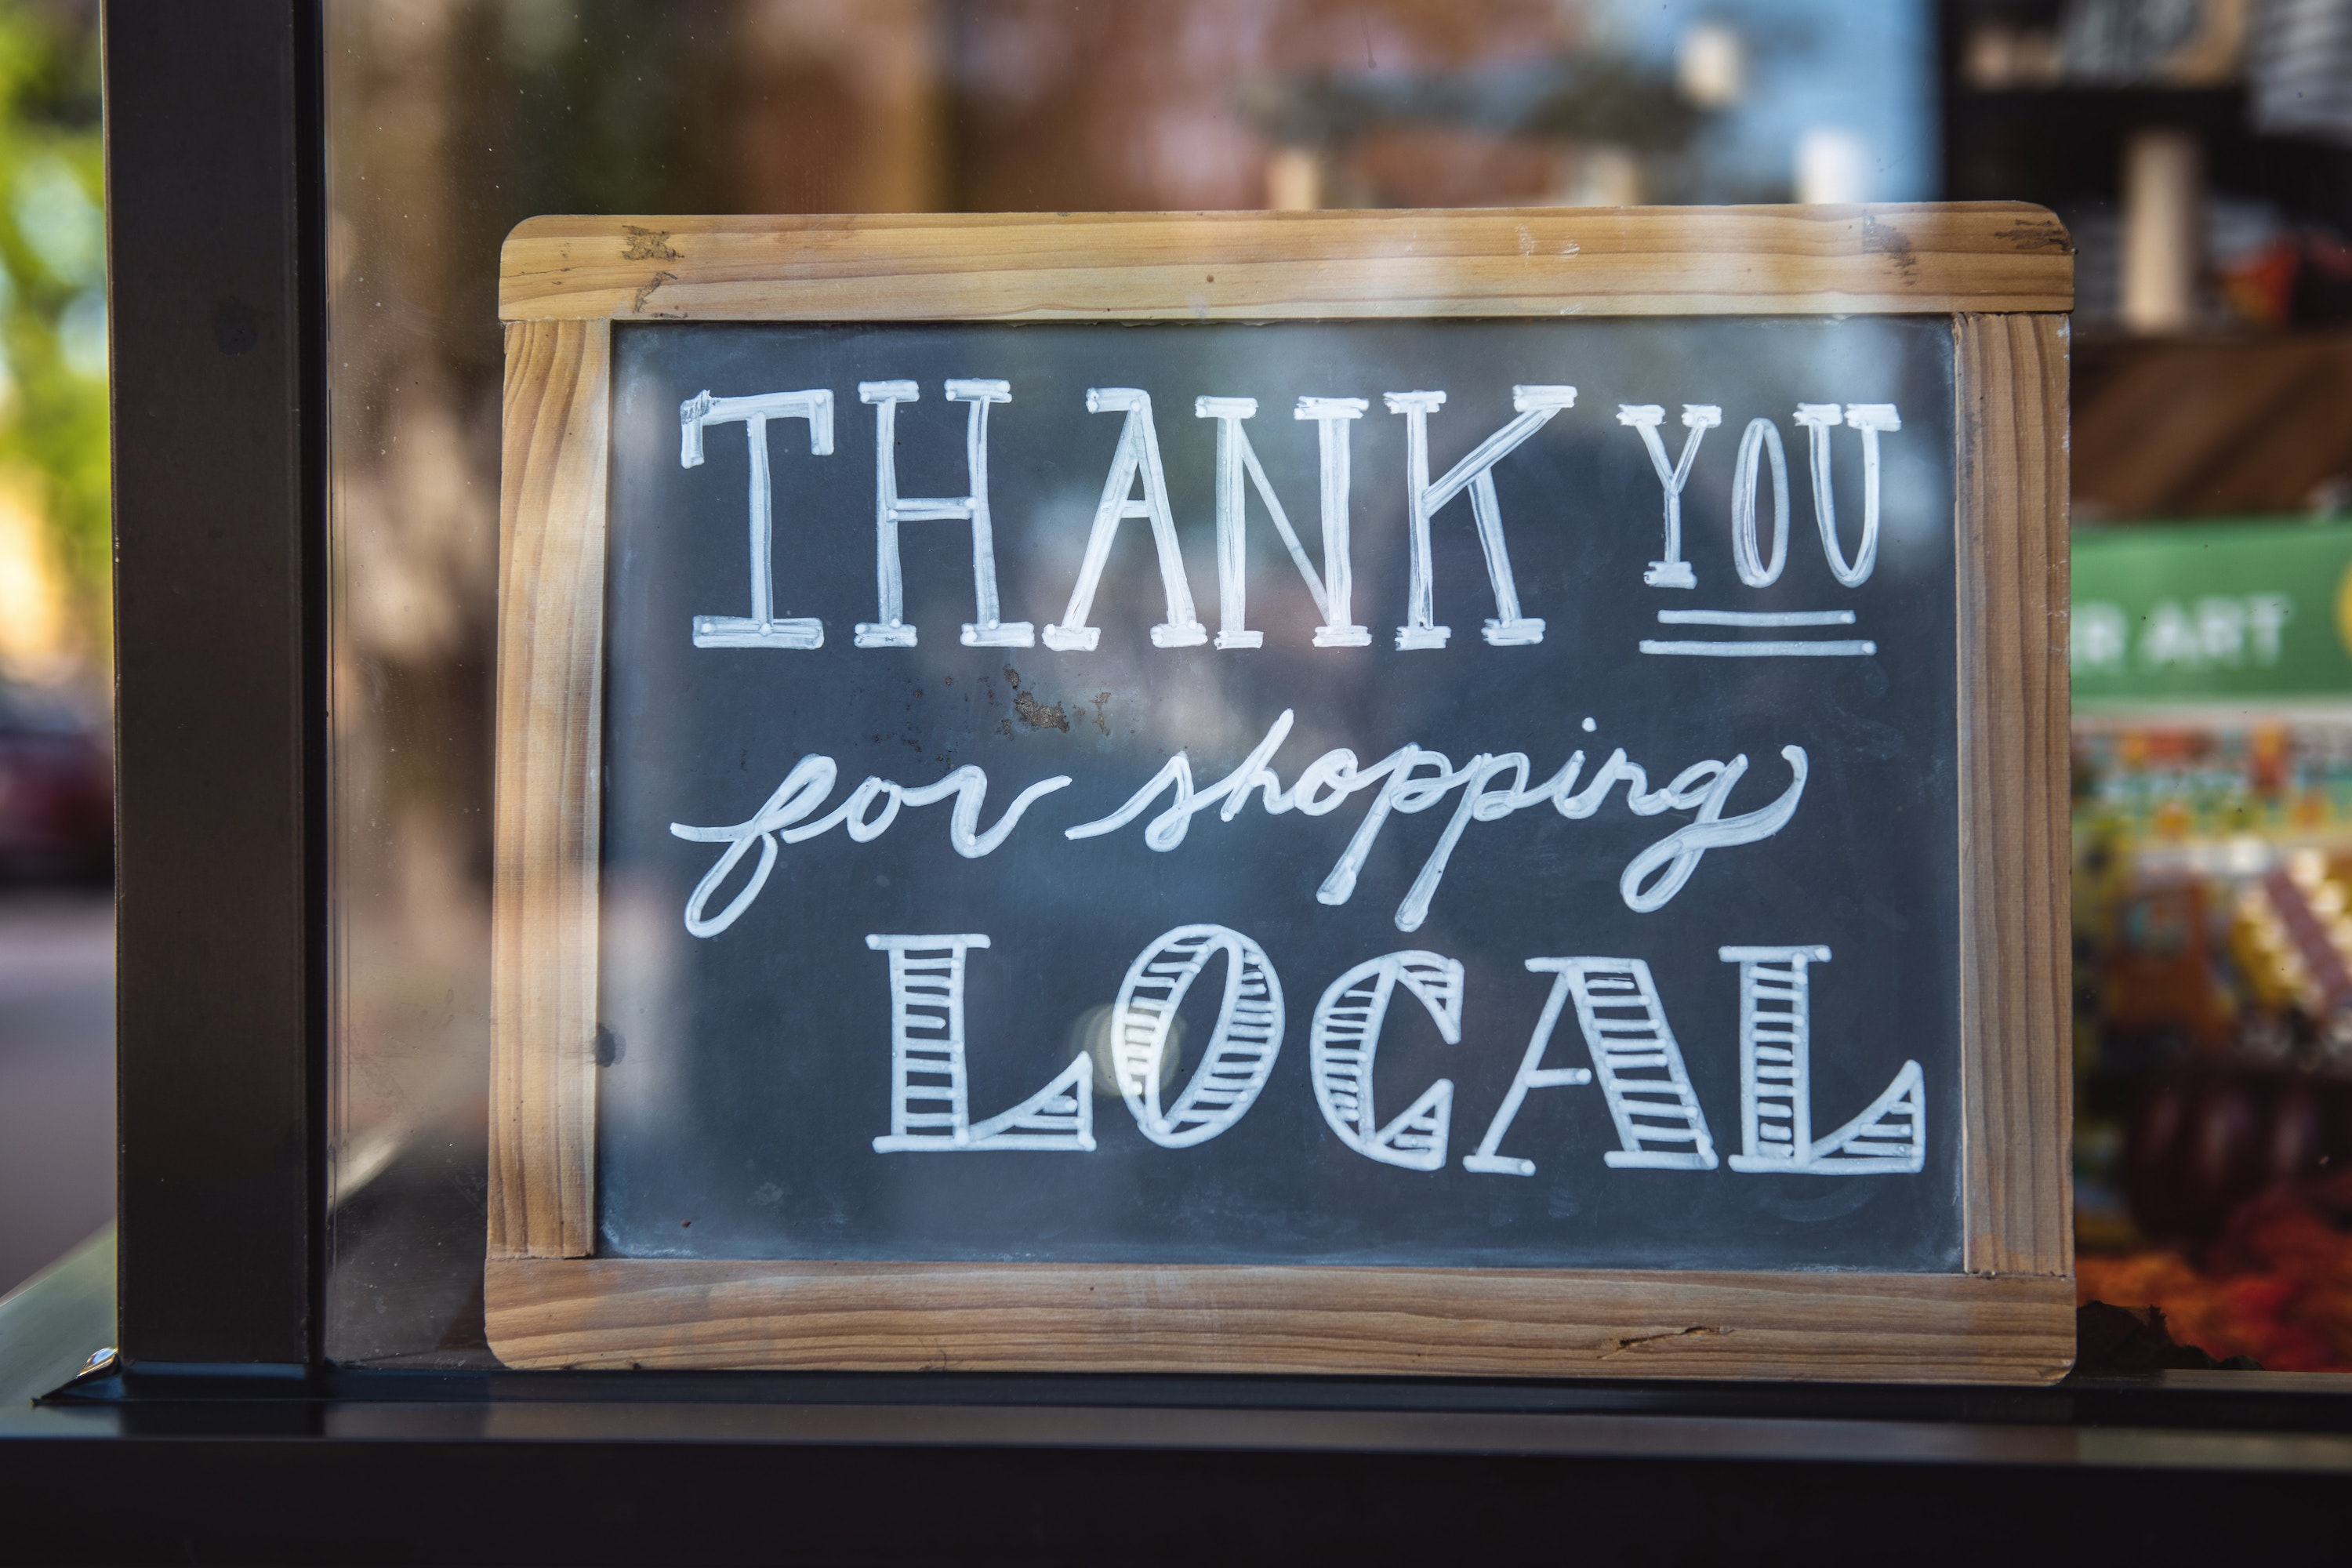 Customers love the idea of shopping local, so if you can incorporate this into your dropshipping strategy, you'll increase their perceived value!